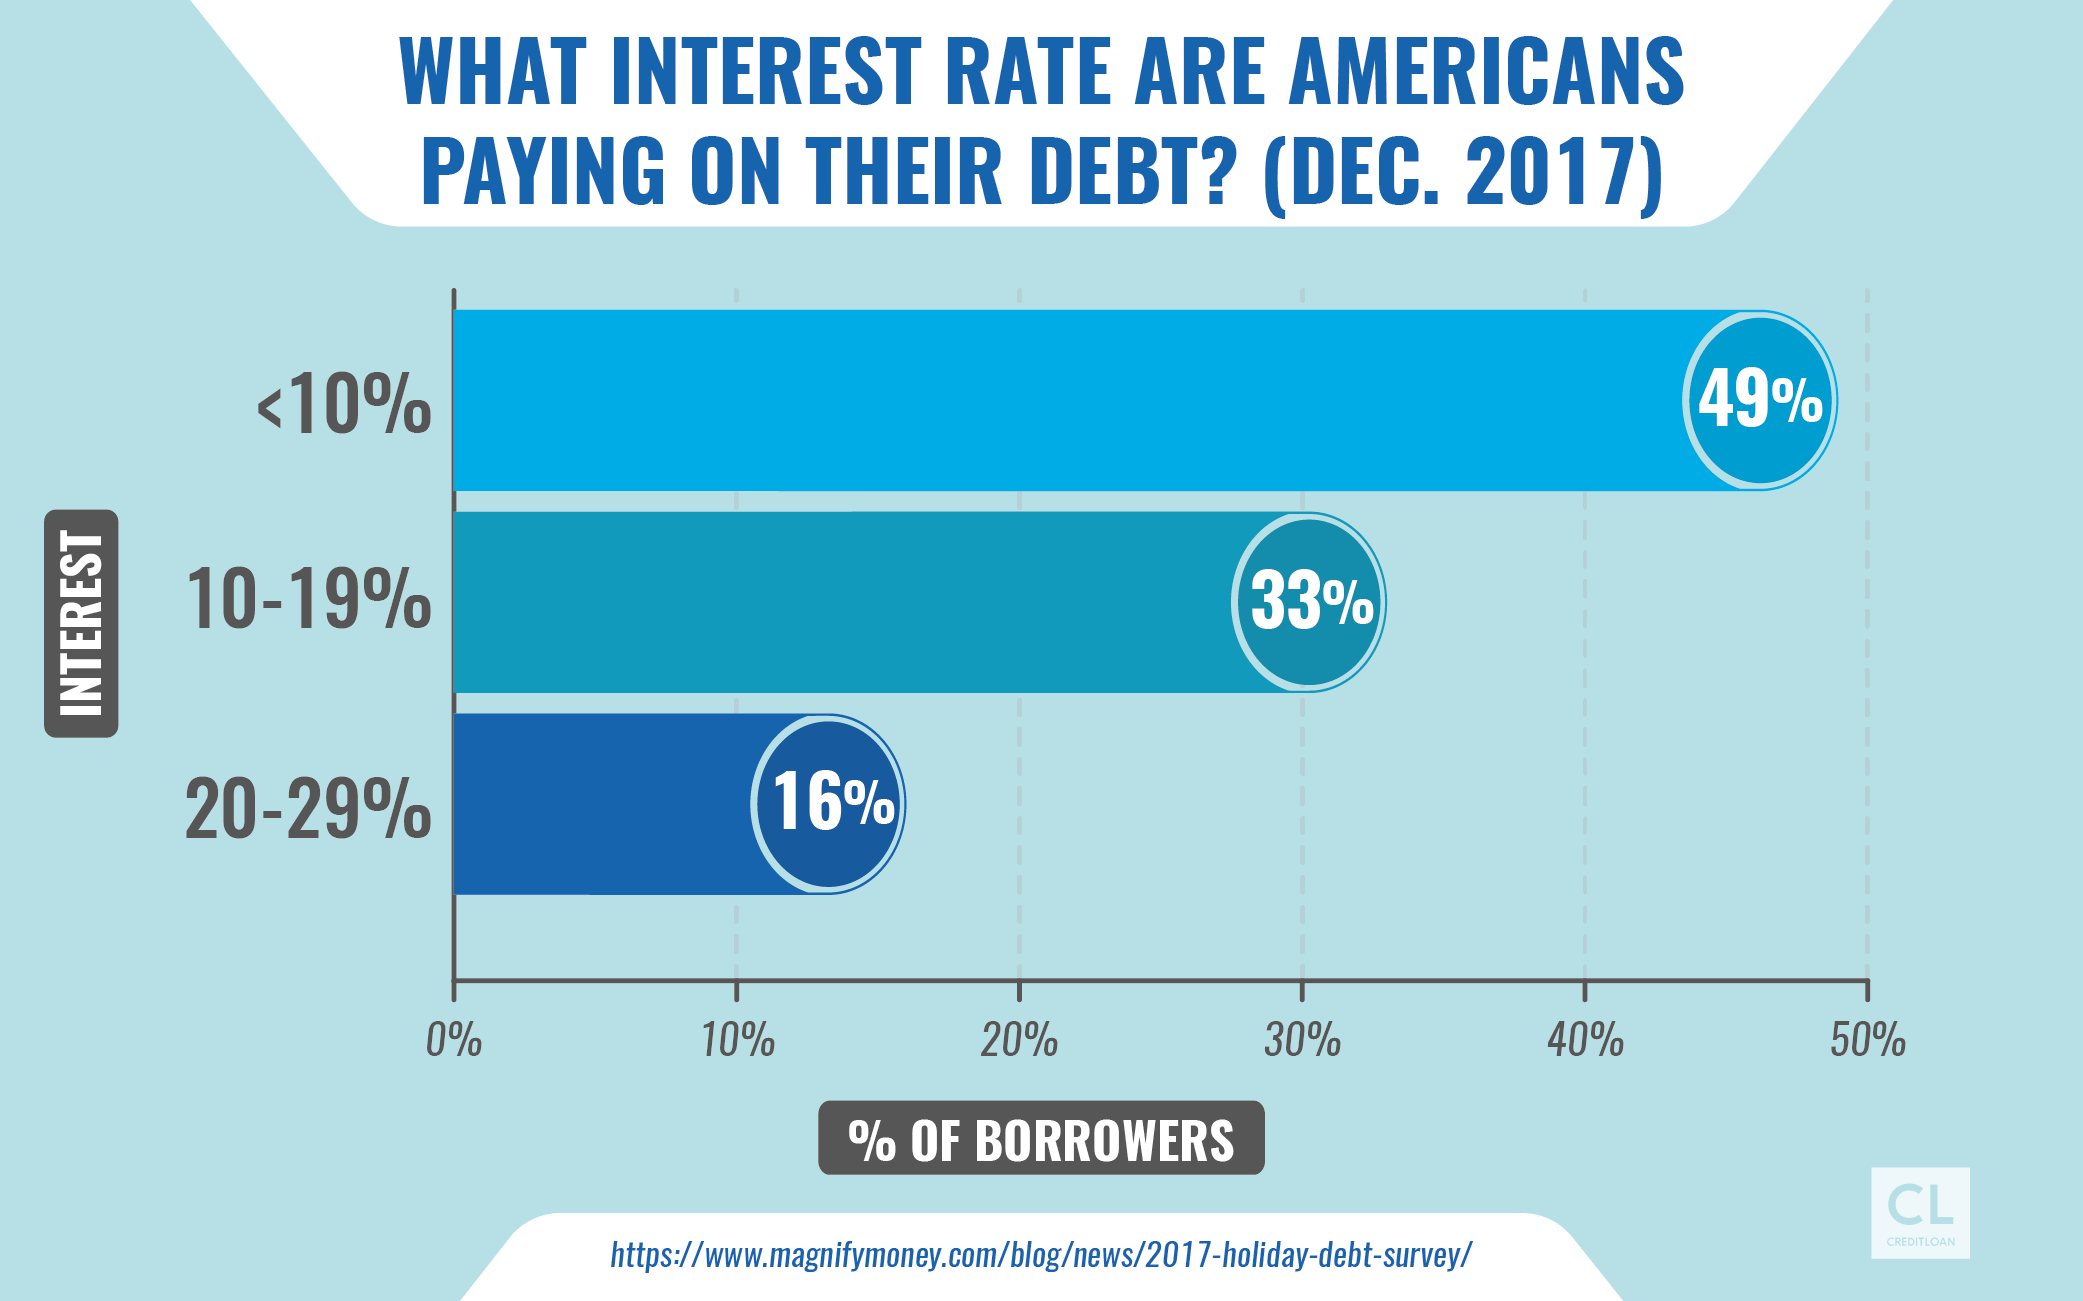 What interest rate are Americans paying on their debt